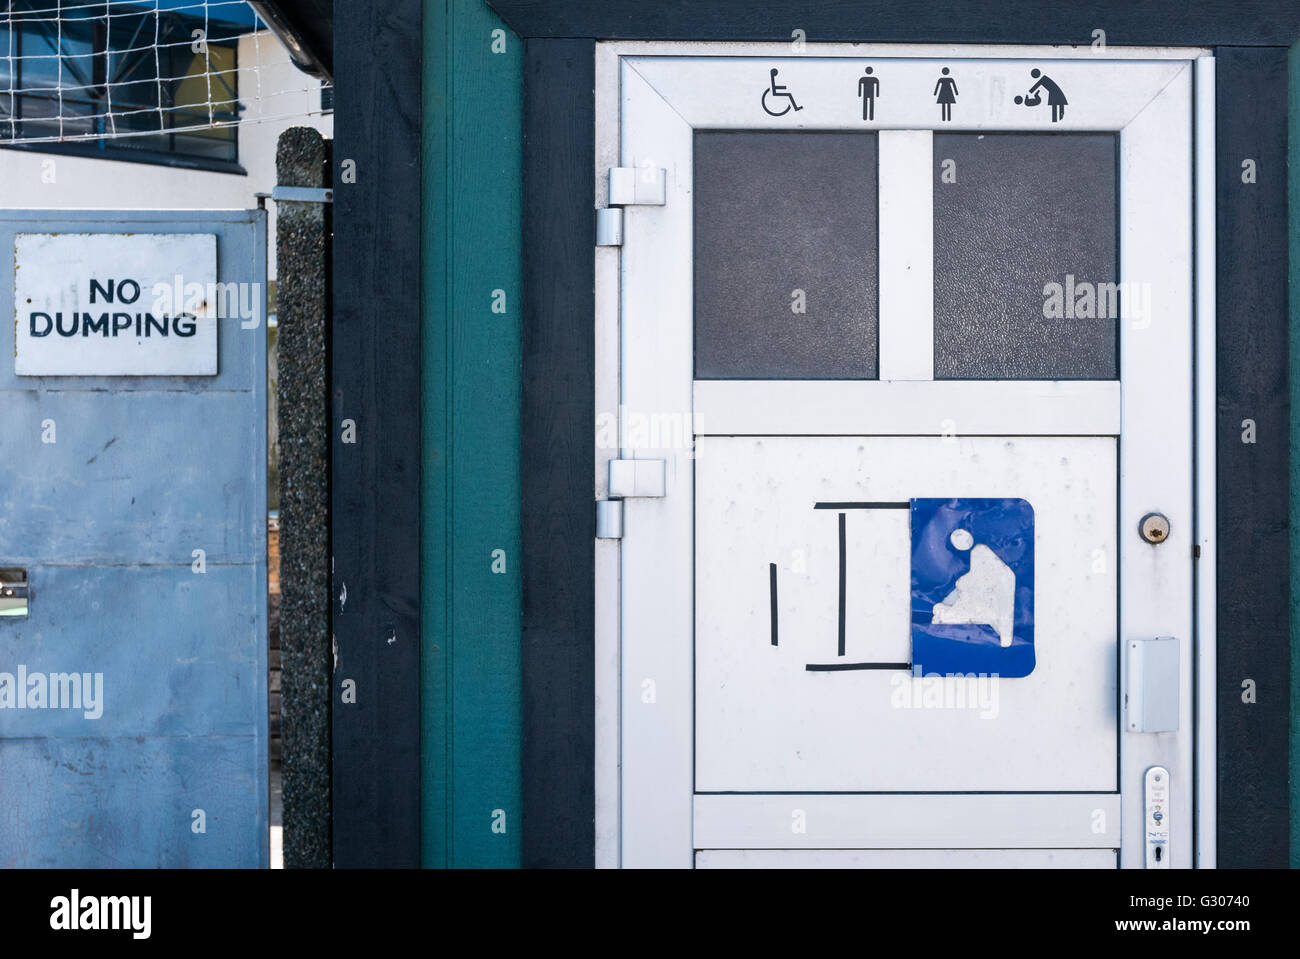 'No Dumping' sign beside a toilet. - Stock Image